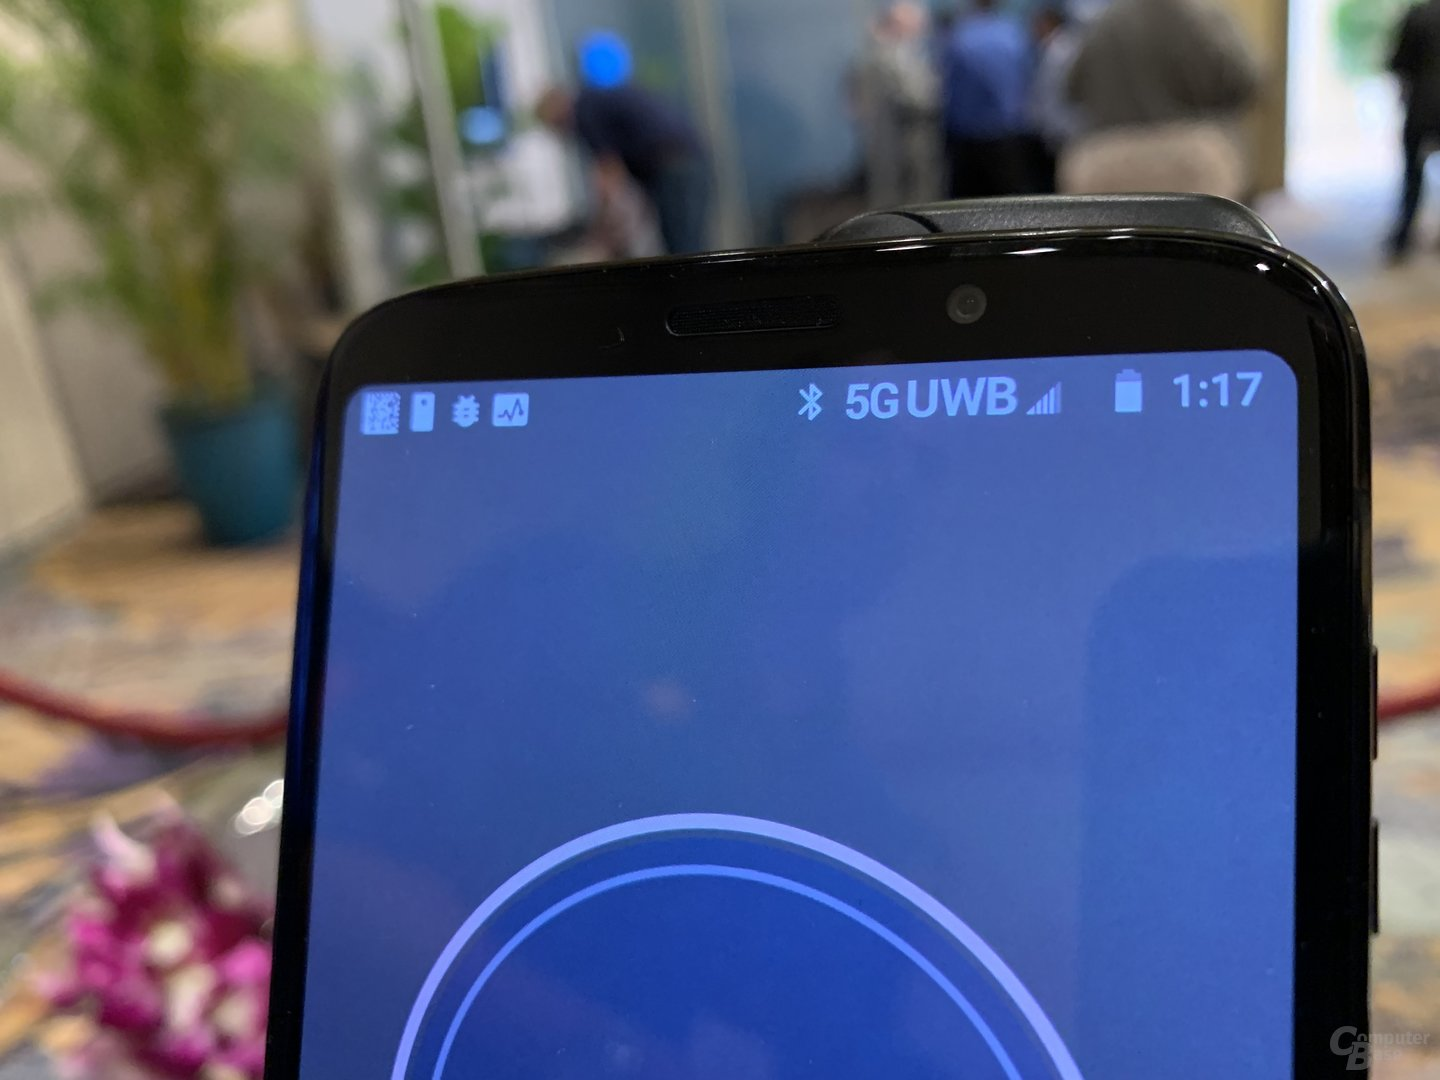 Statusleiste mit 5G Ultra Wide Band (mmWave)